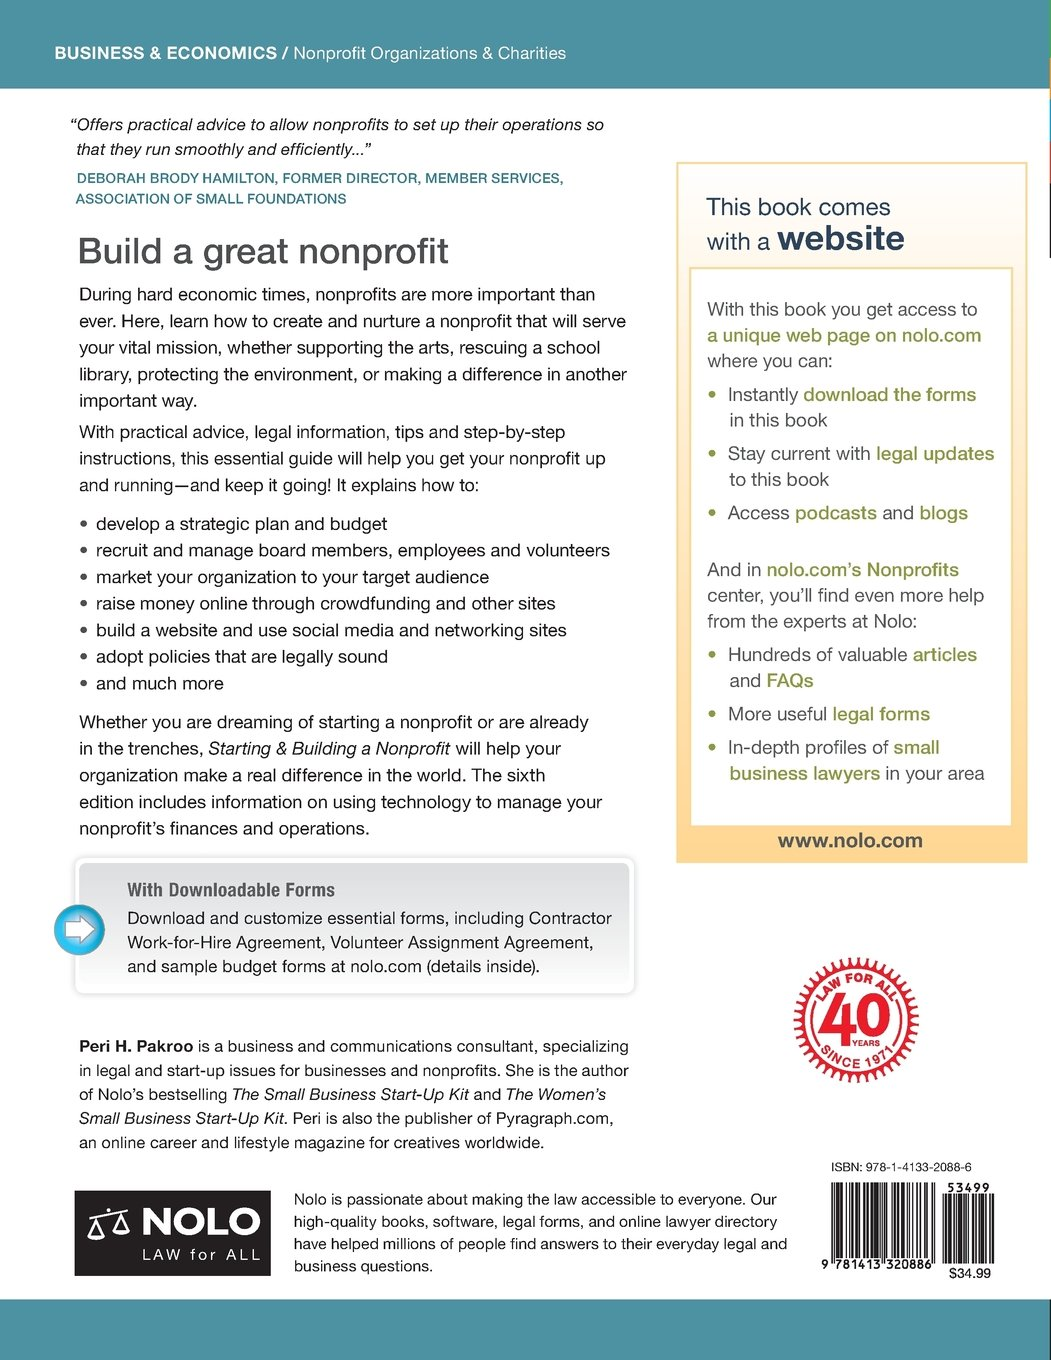 Starting & Building a Nonprofit: A Practical Guide: Peri Pakroo J.D.:  9781413320886: Amazon.com: Books